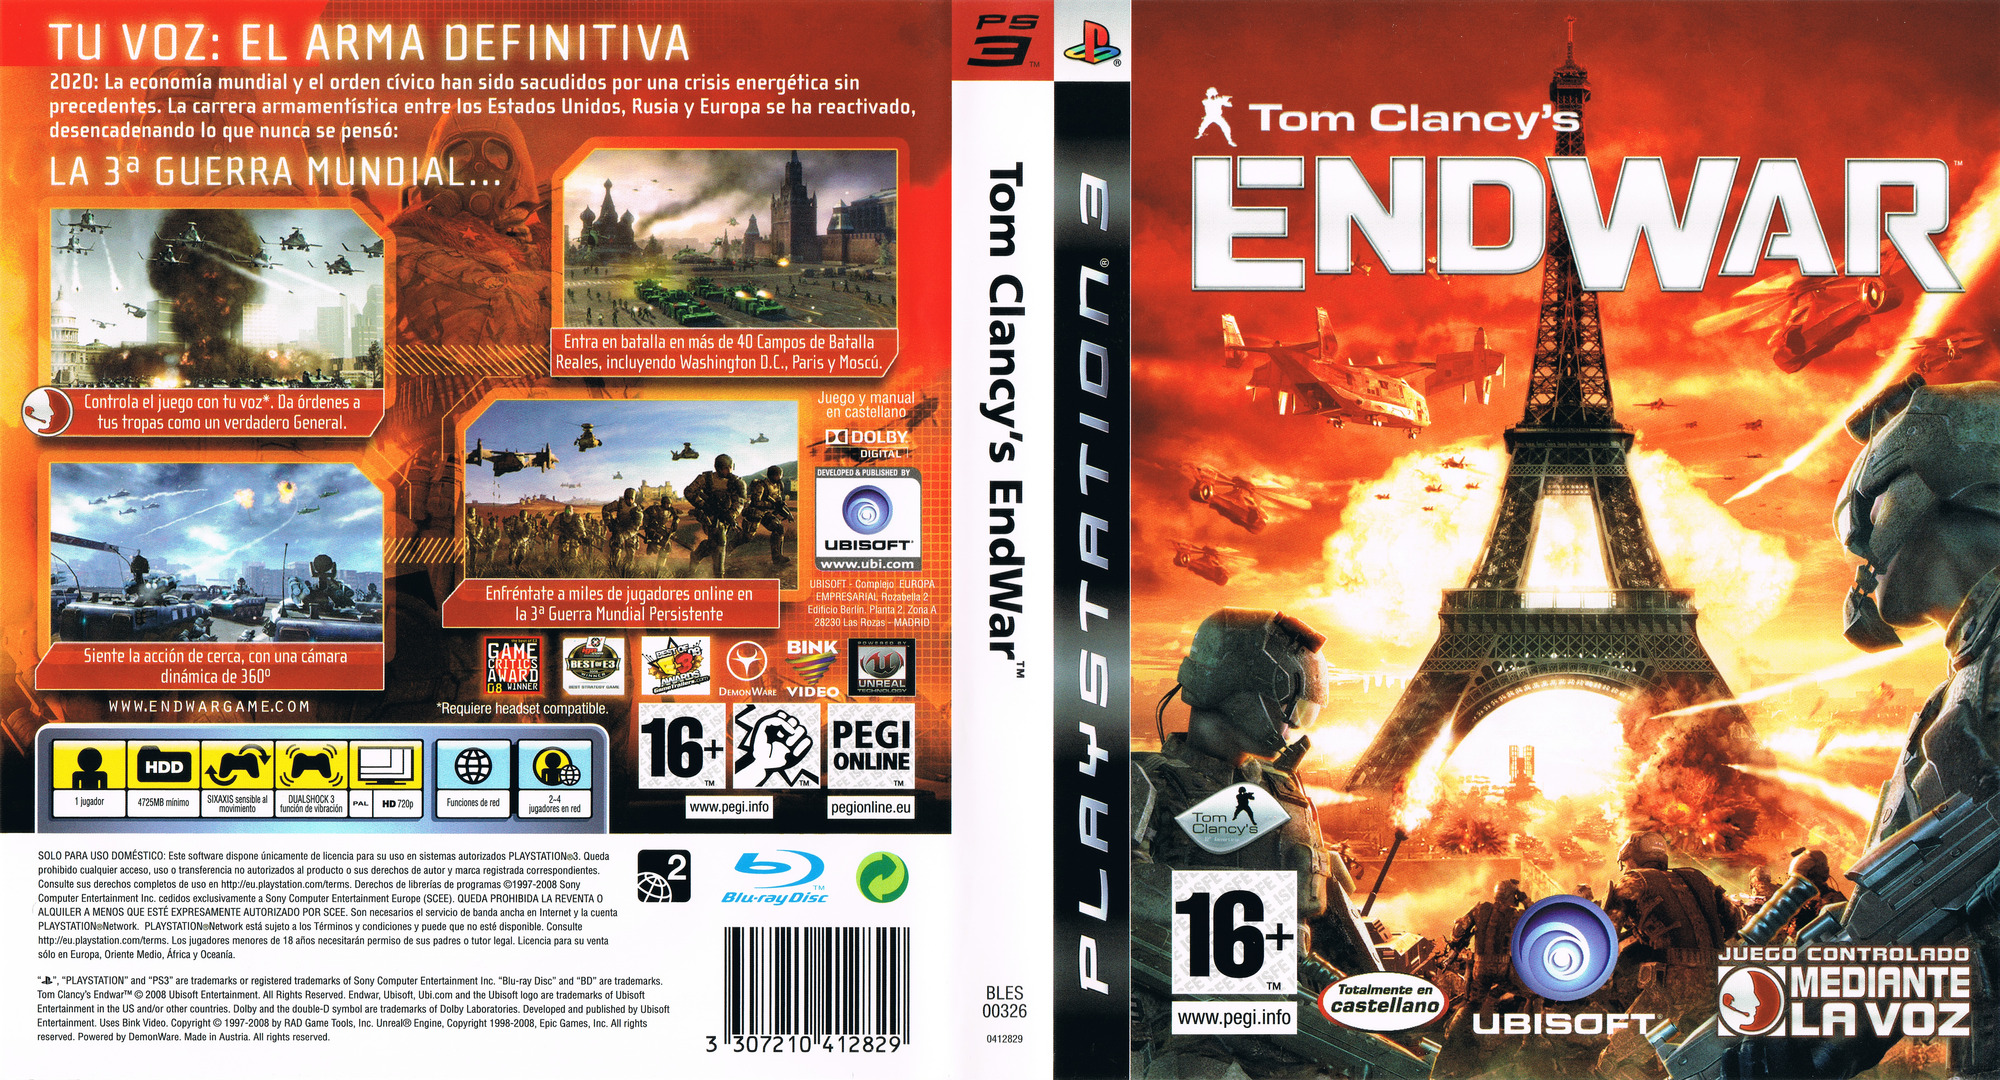 Tom Clancy's EndWar PS3 coverfullHQ (BLES00326)